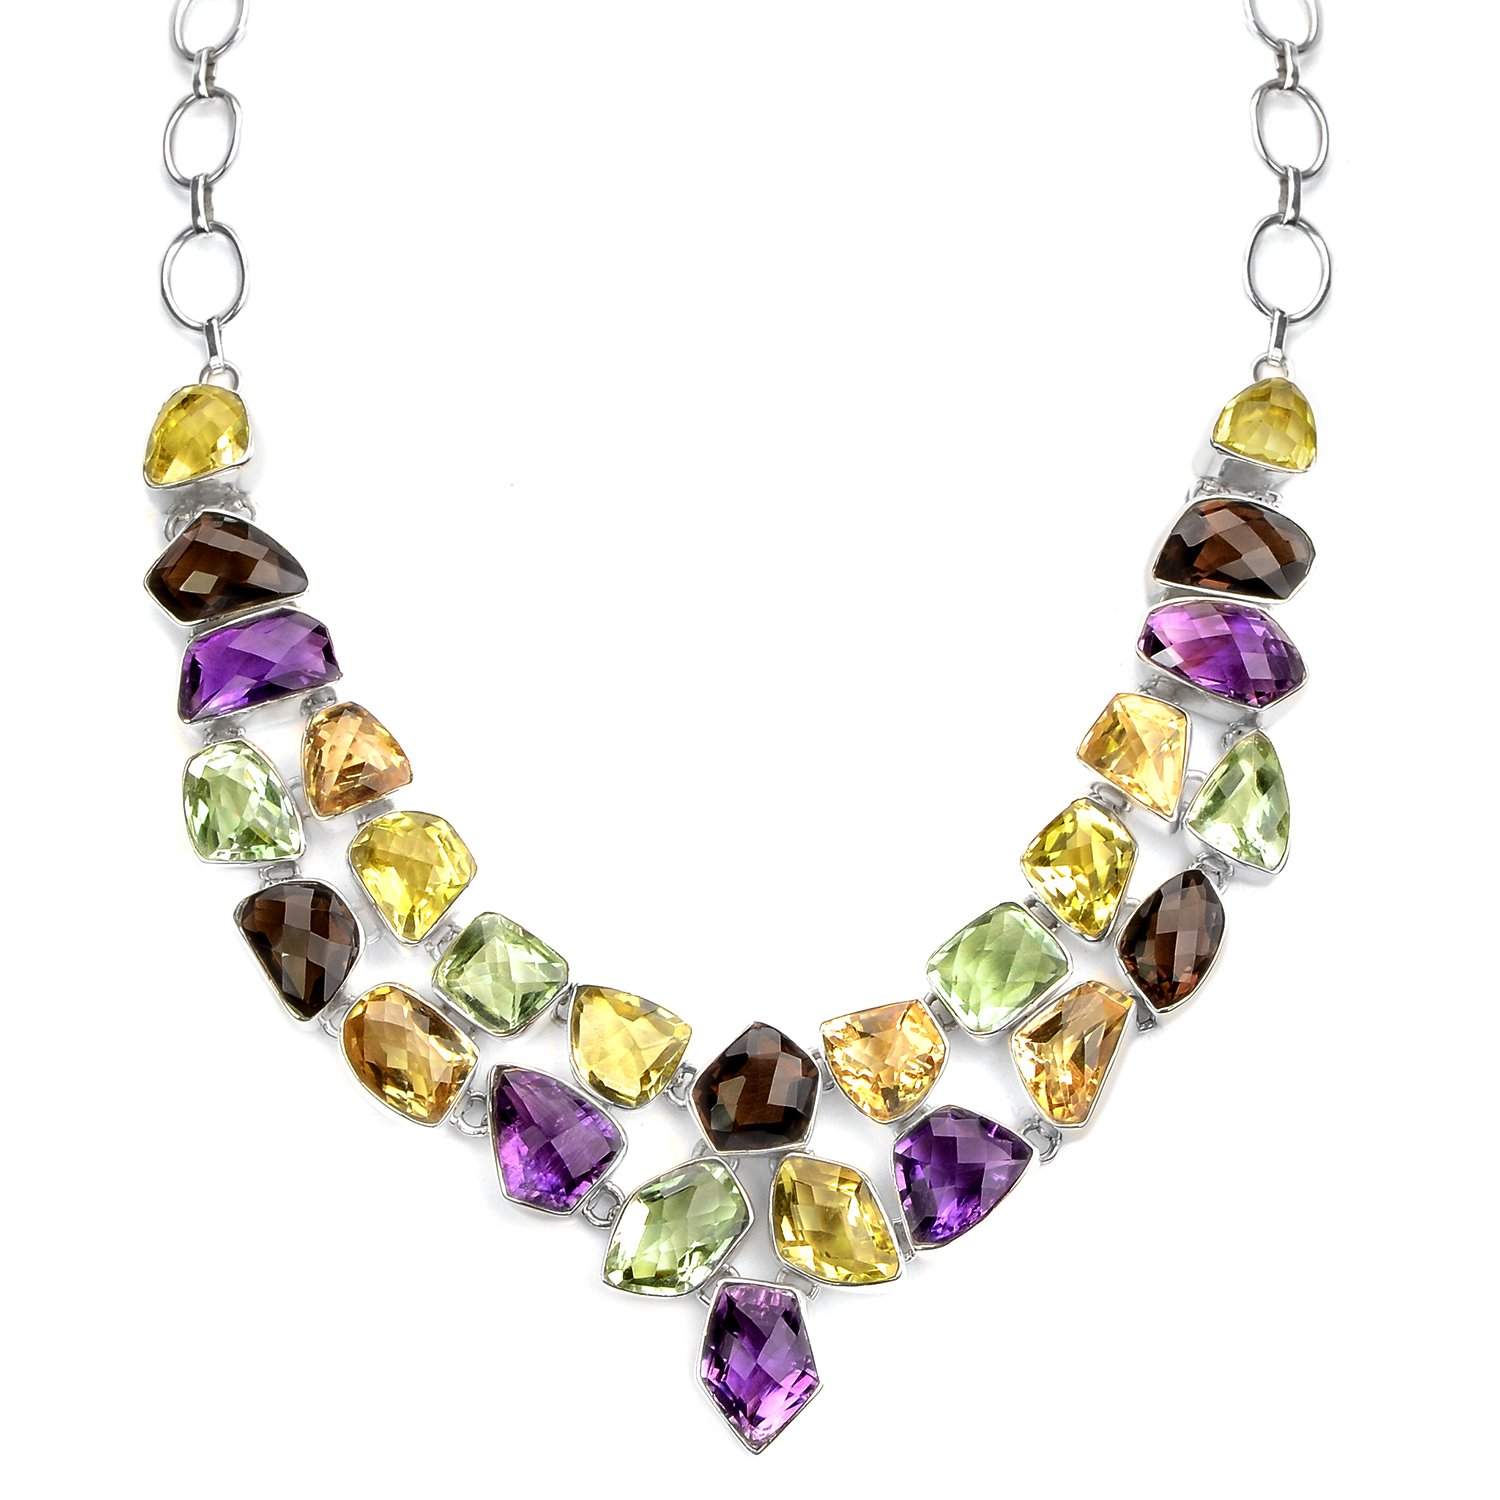 Dazzling Gemstones of Amethyst, Green Amethyst, Lemon Quartz and Citrine Statement Necklace